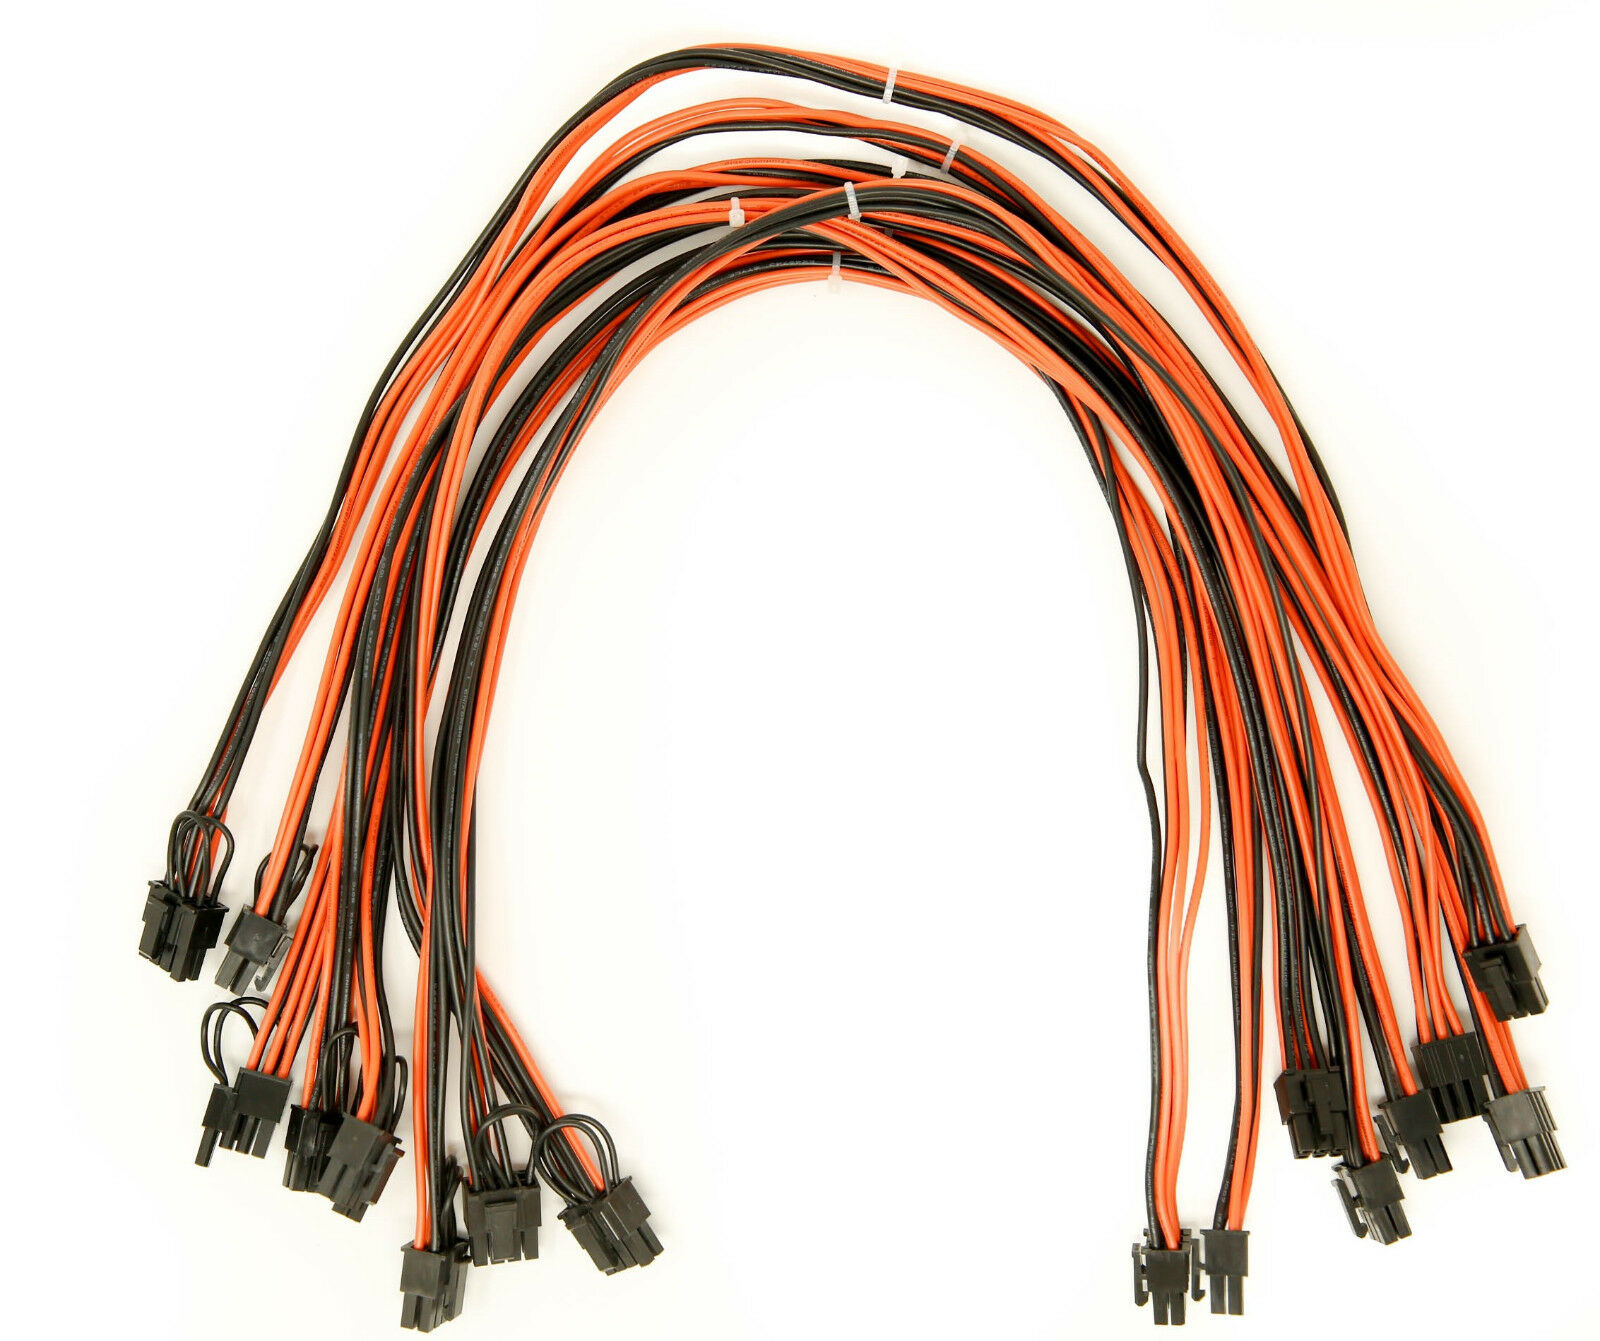 8Pcs/Set 8pin Cable 60 Cm 6 Pin To 6+2 Pin Male To Male Pci Cables as shown